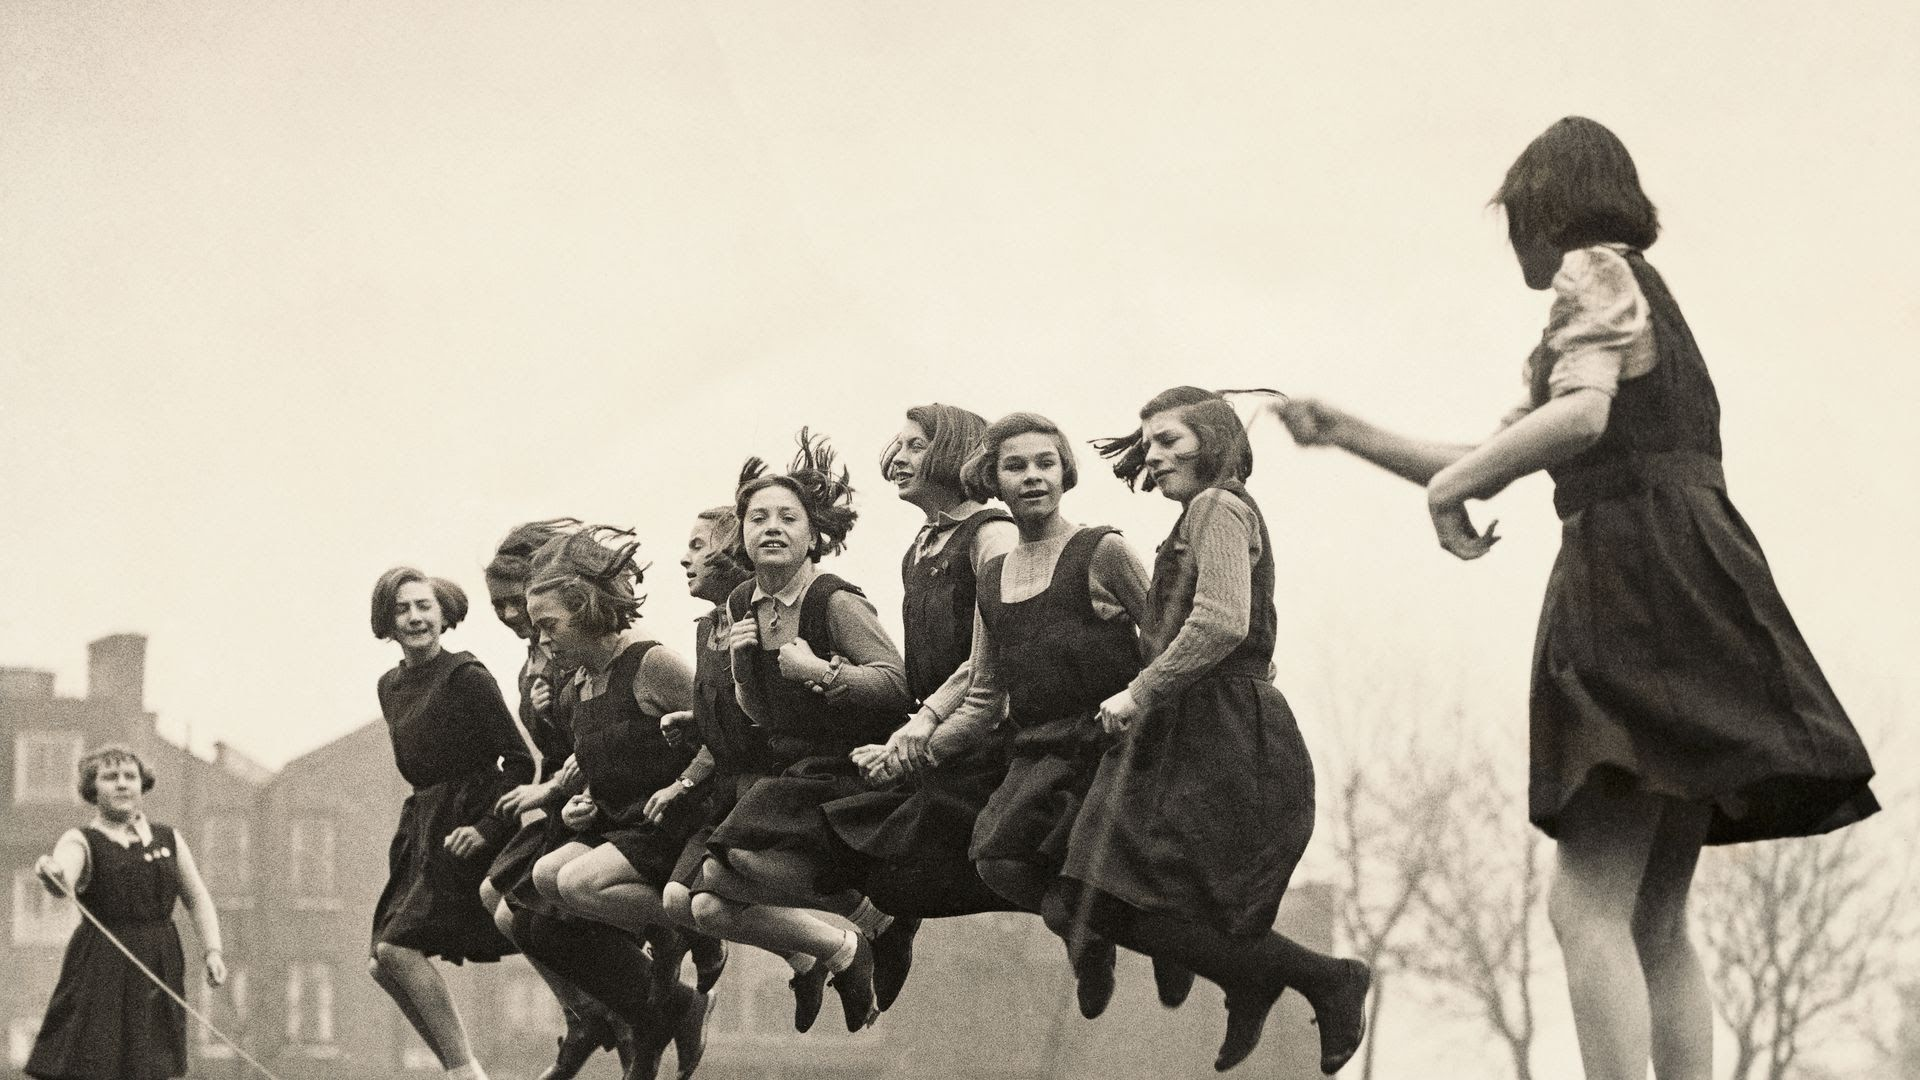 A black and white photo of schoolgirls in uniform jumping rope